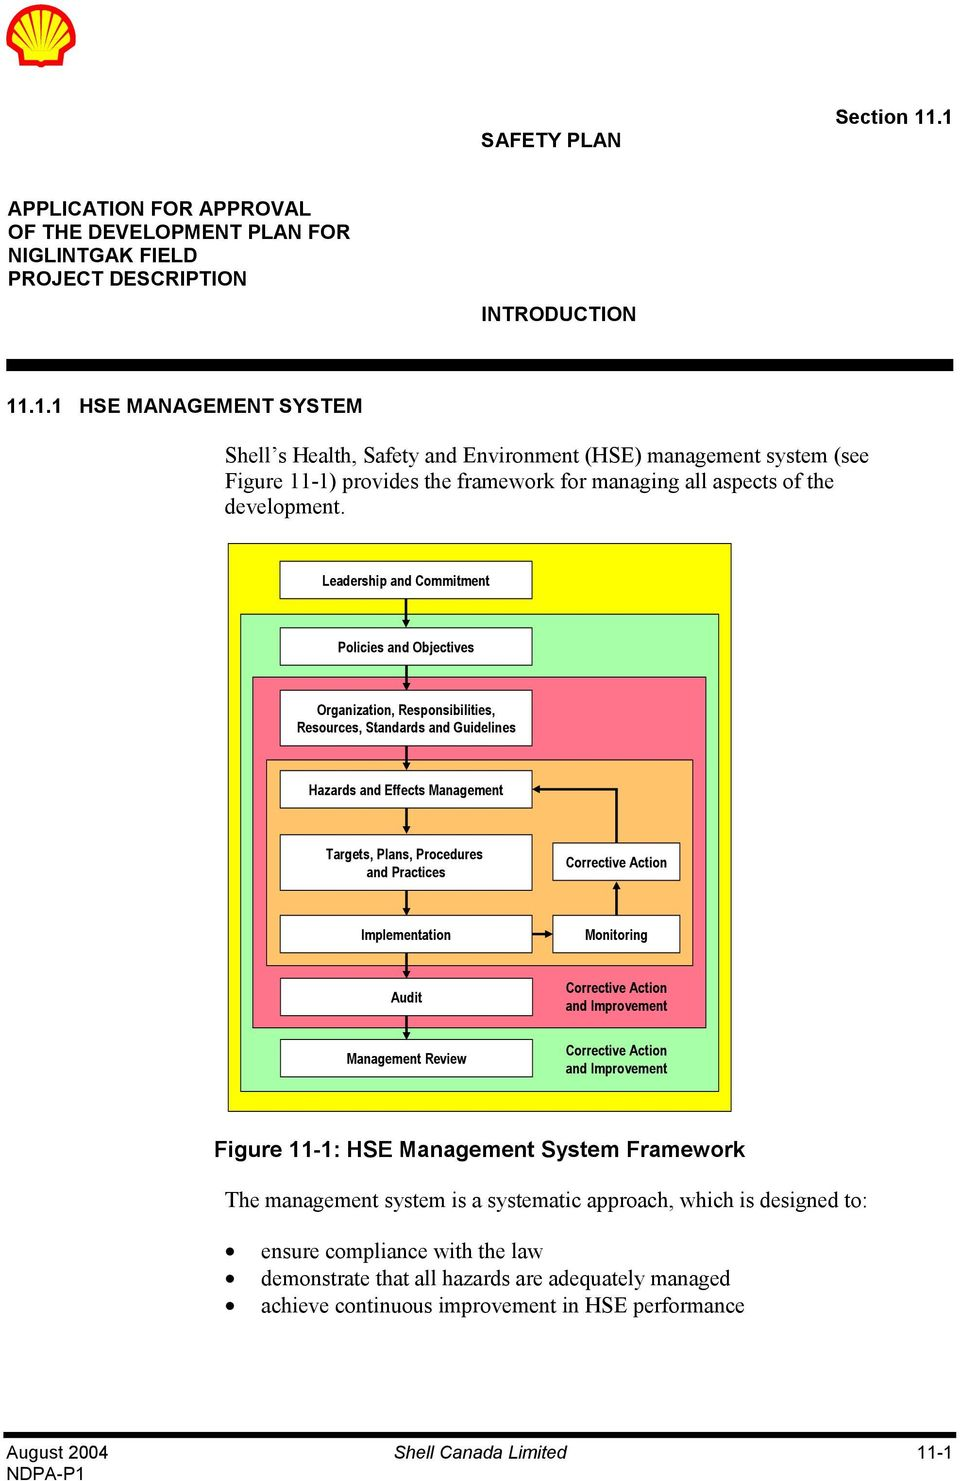 Corrective Action Implementation Monitoring Audit Corrective Action and Improvement Management Review Corrective Action and Improvement Figure 11-1: HSE Management System Framework The management